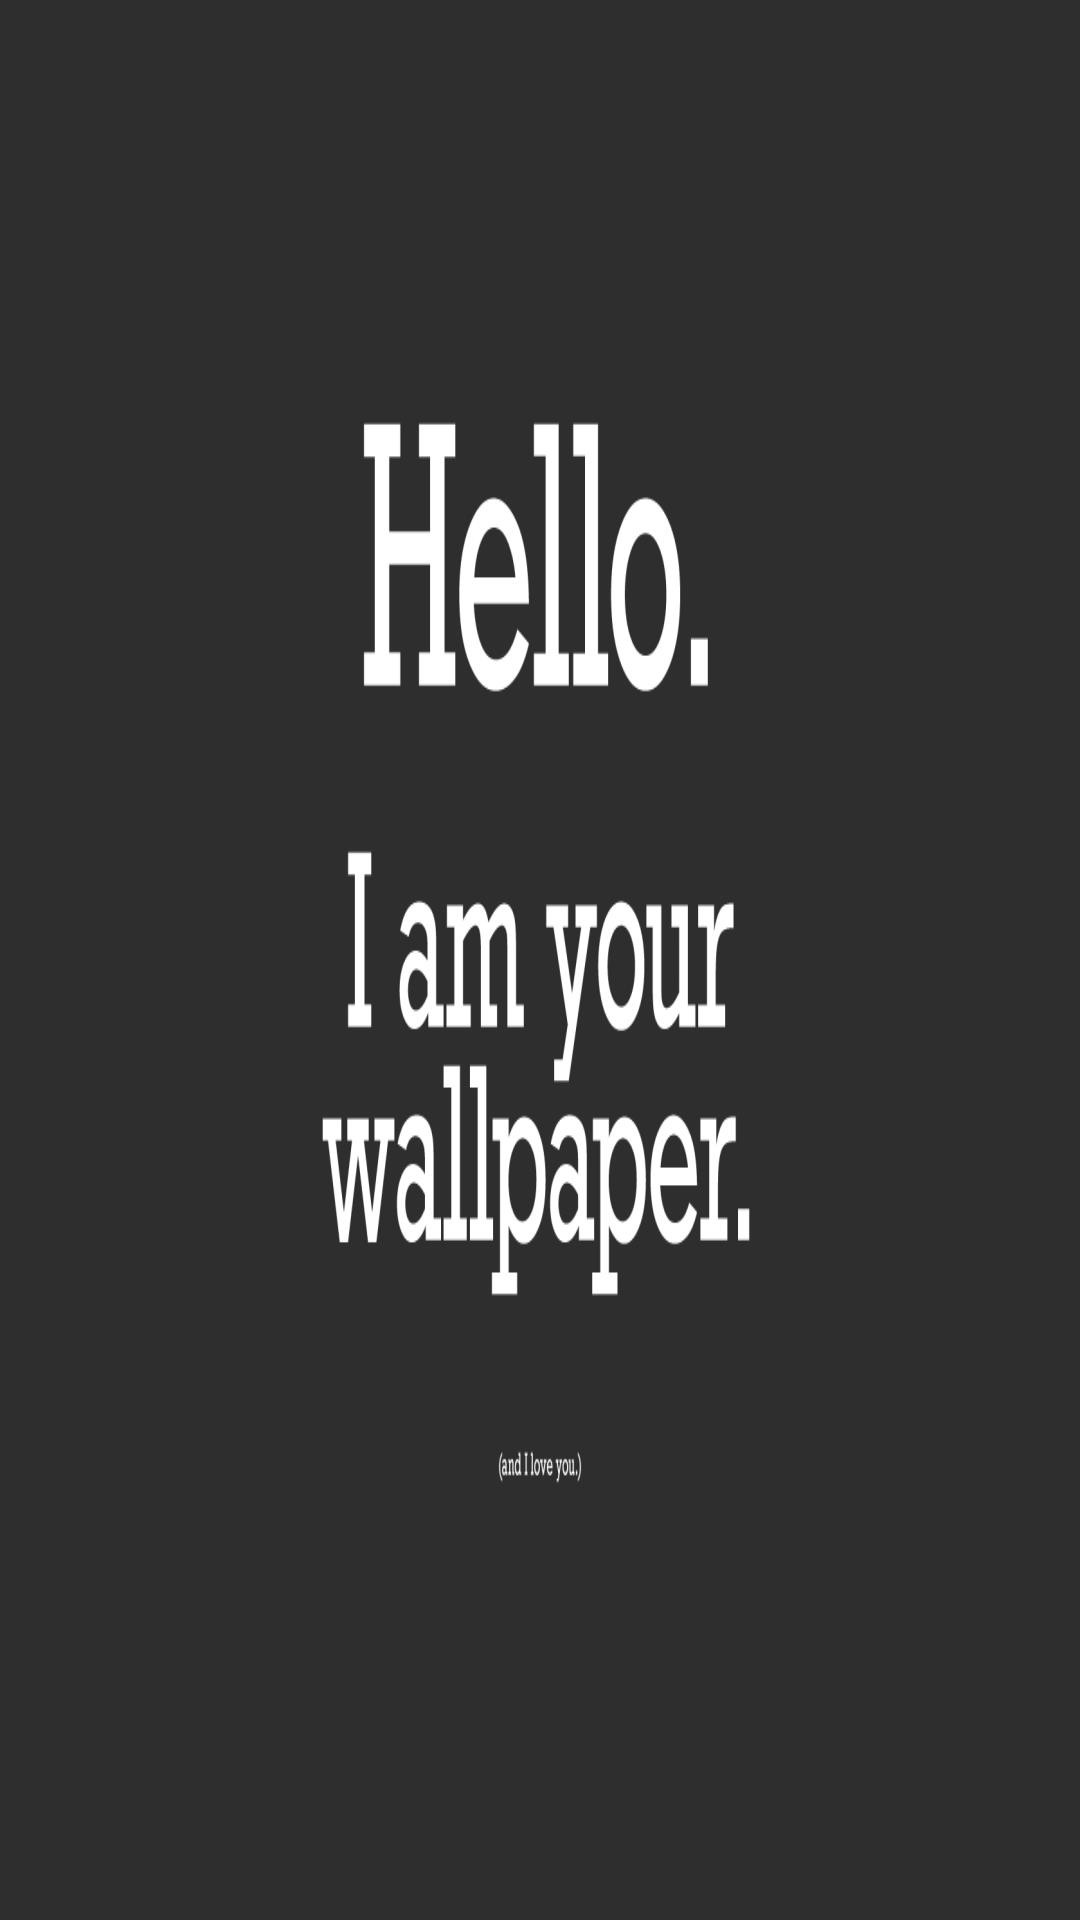 Funny Wallpapers 1280x1024 59 Pictures